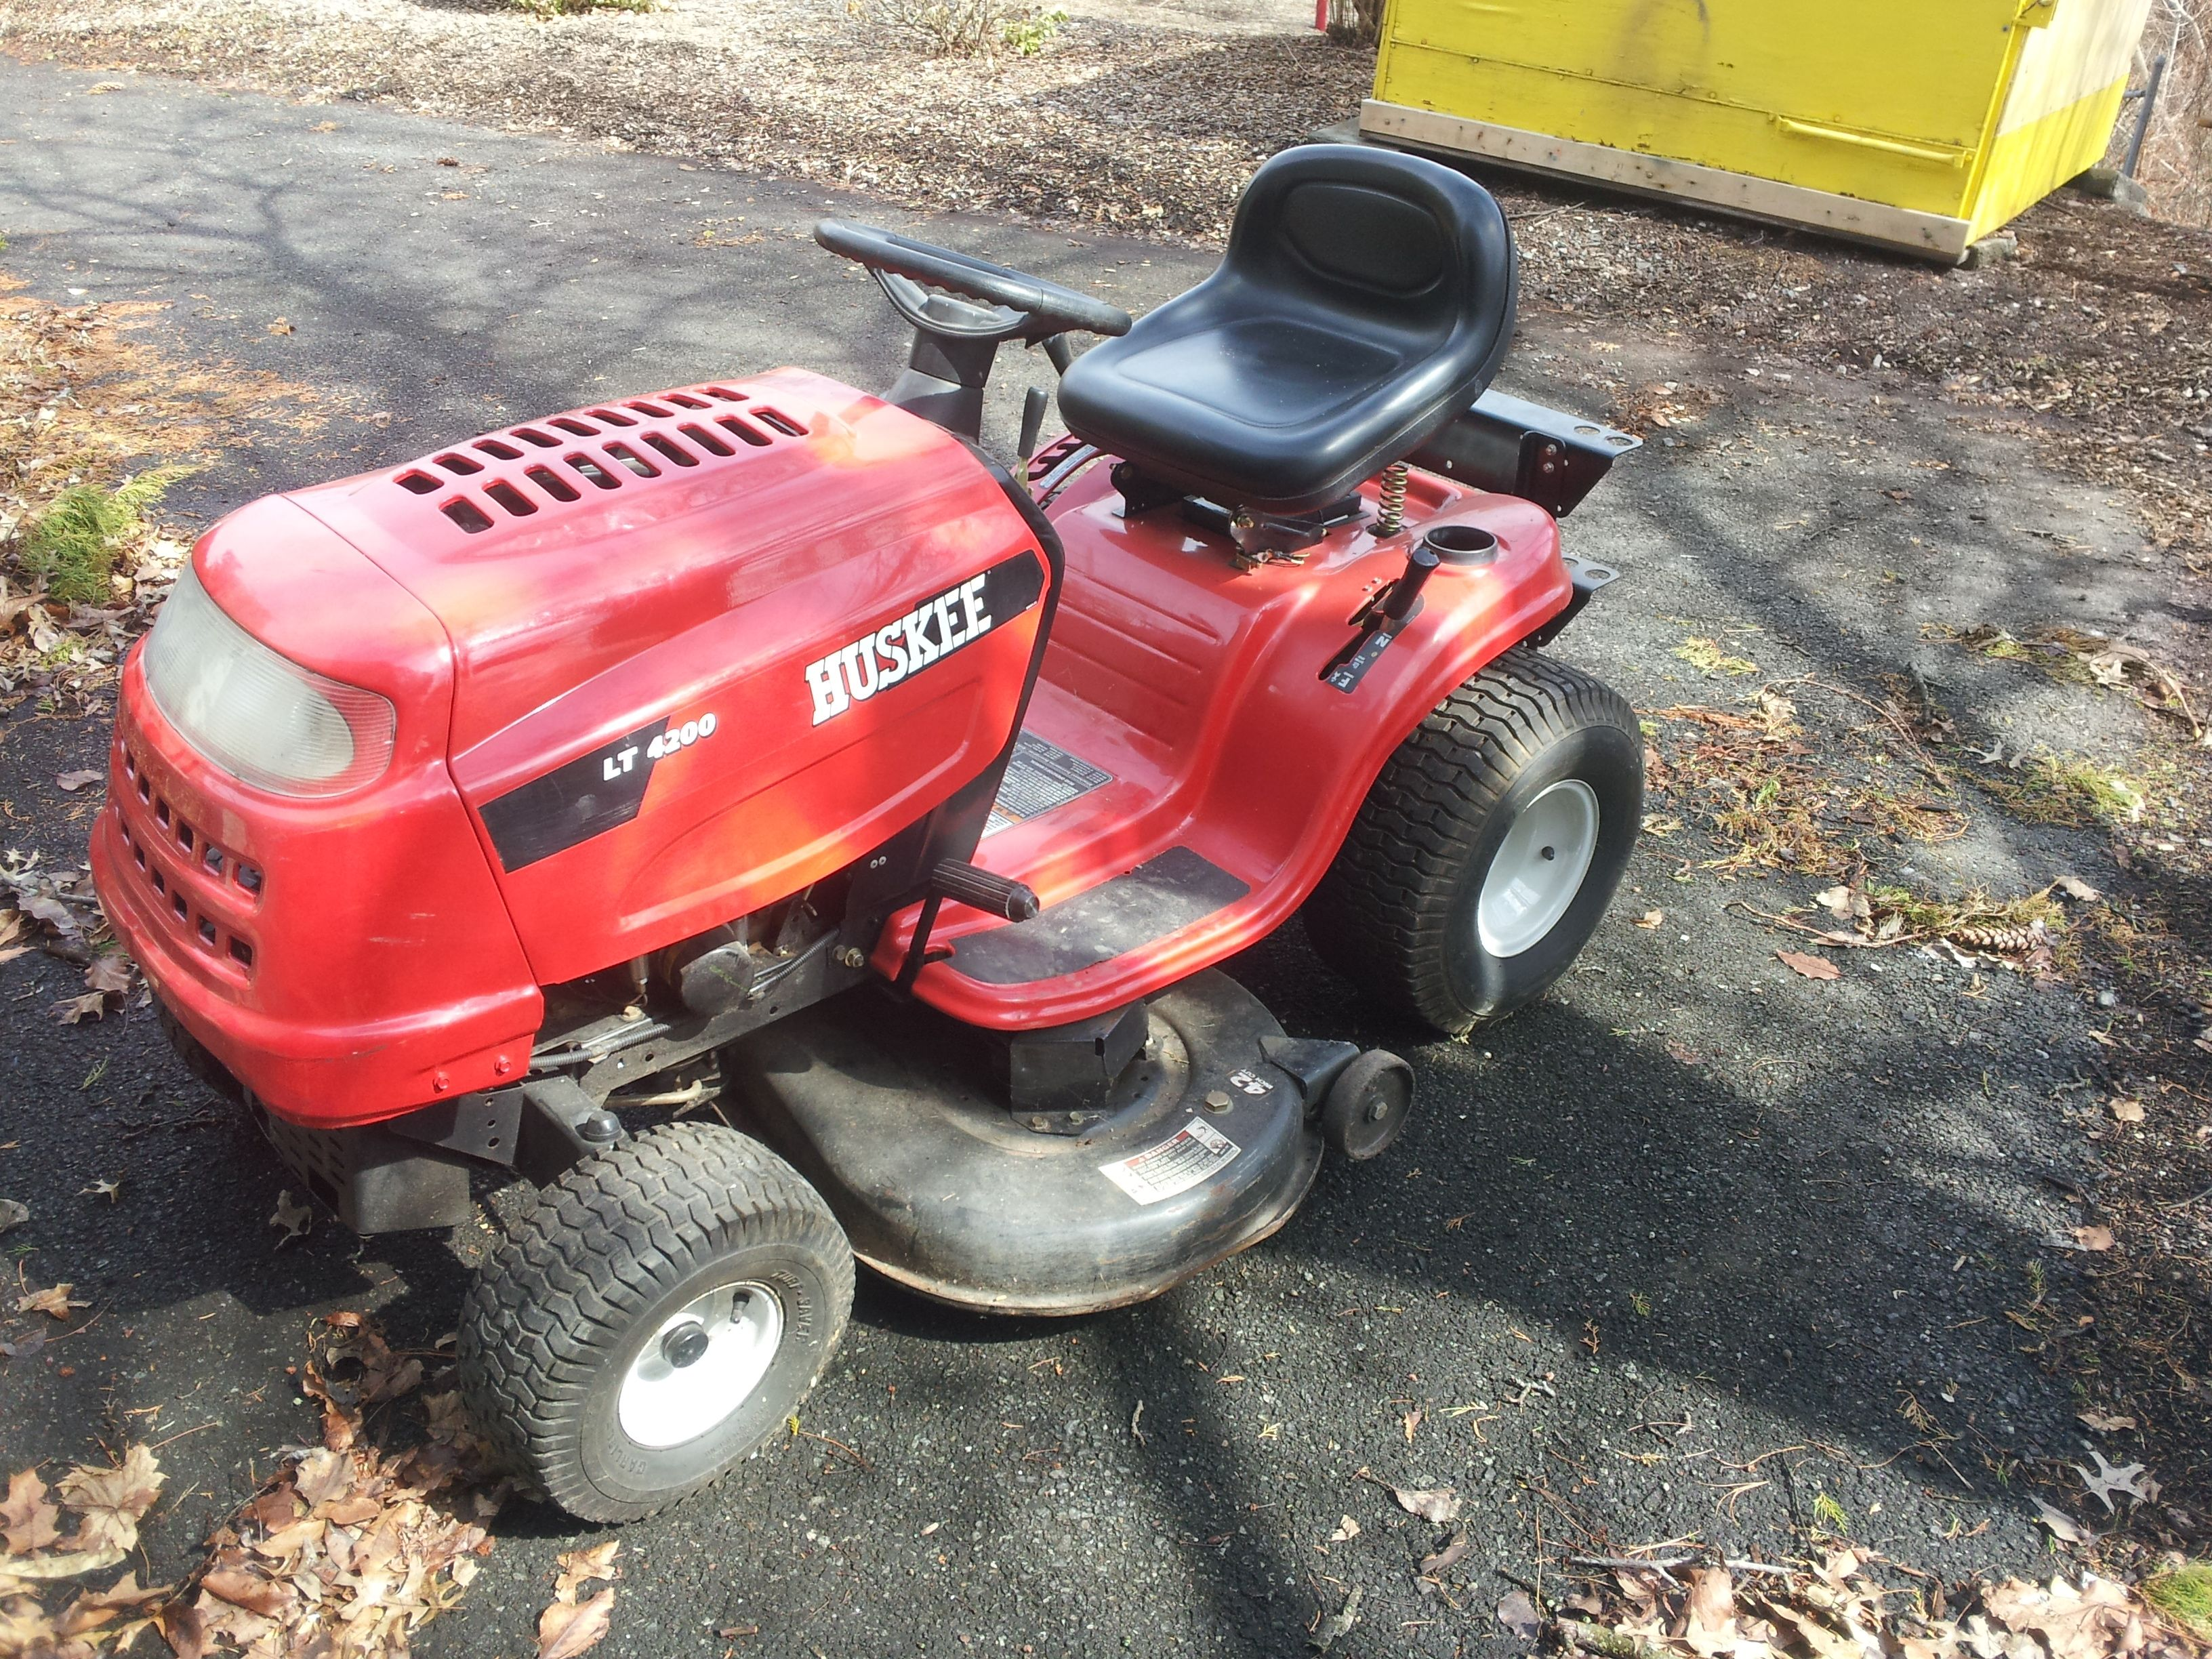 tractor mower for sale. huskee lt 4200 riding mower for sale on municibid.com tractor e